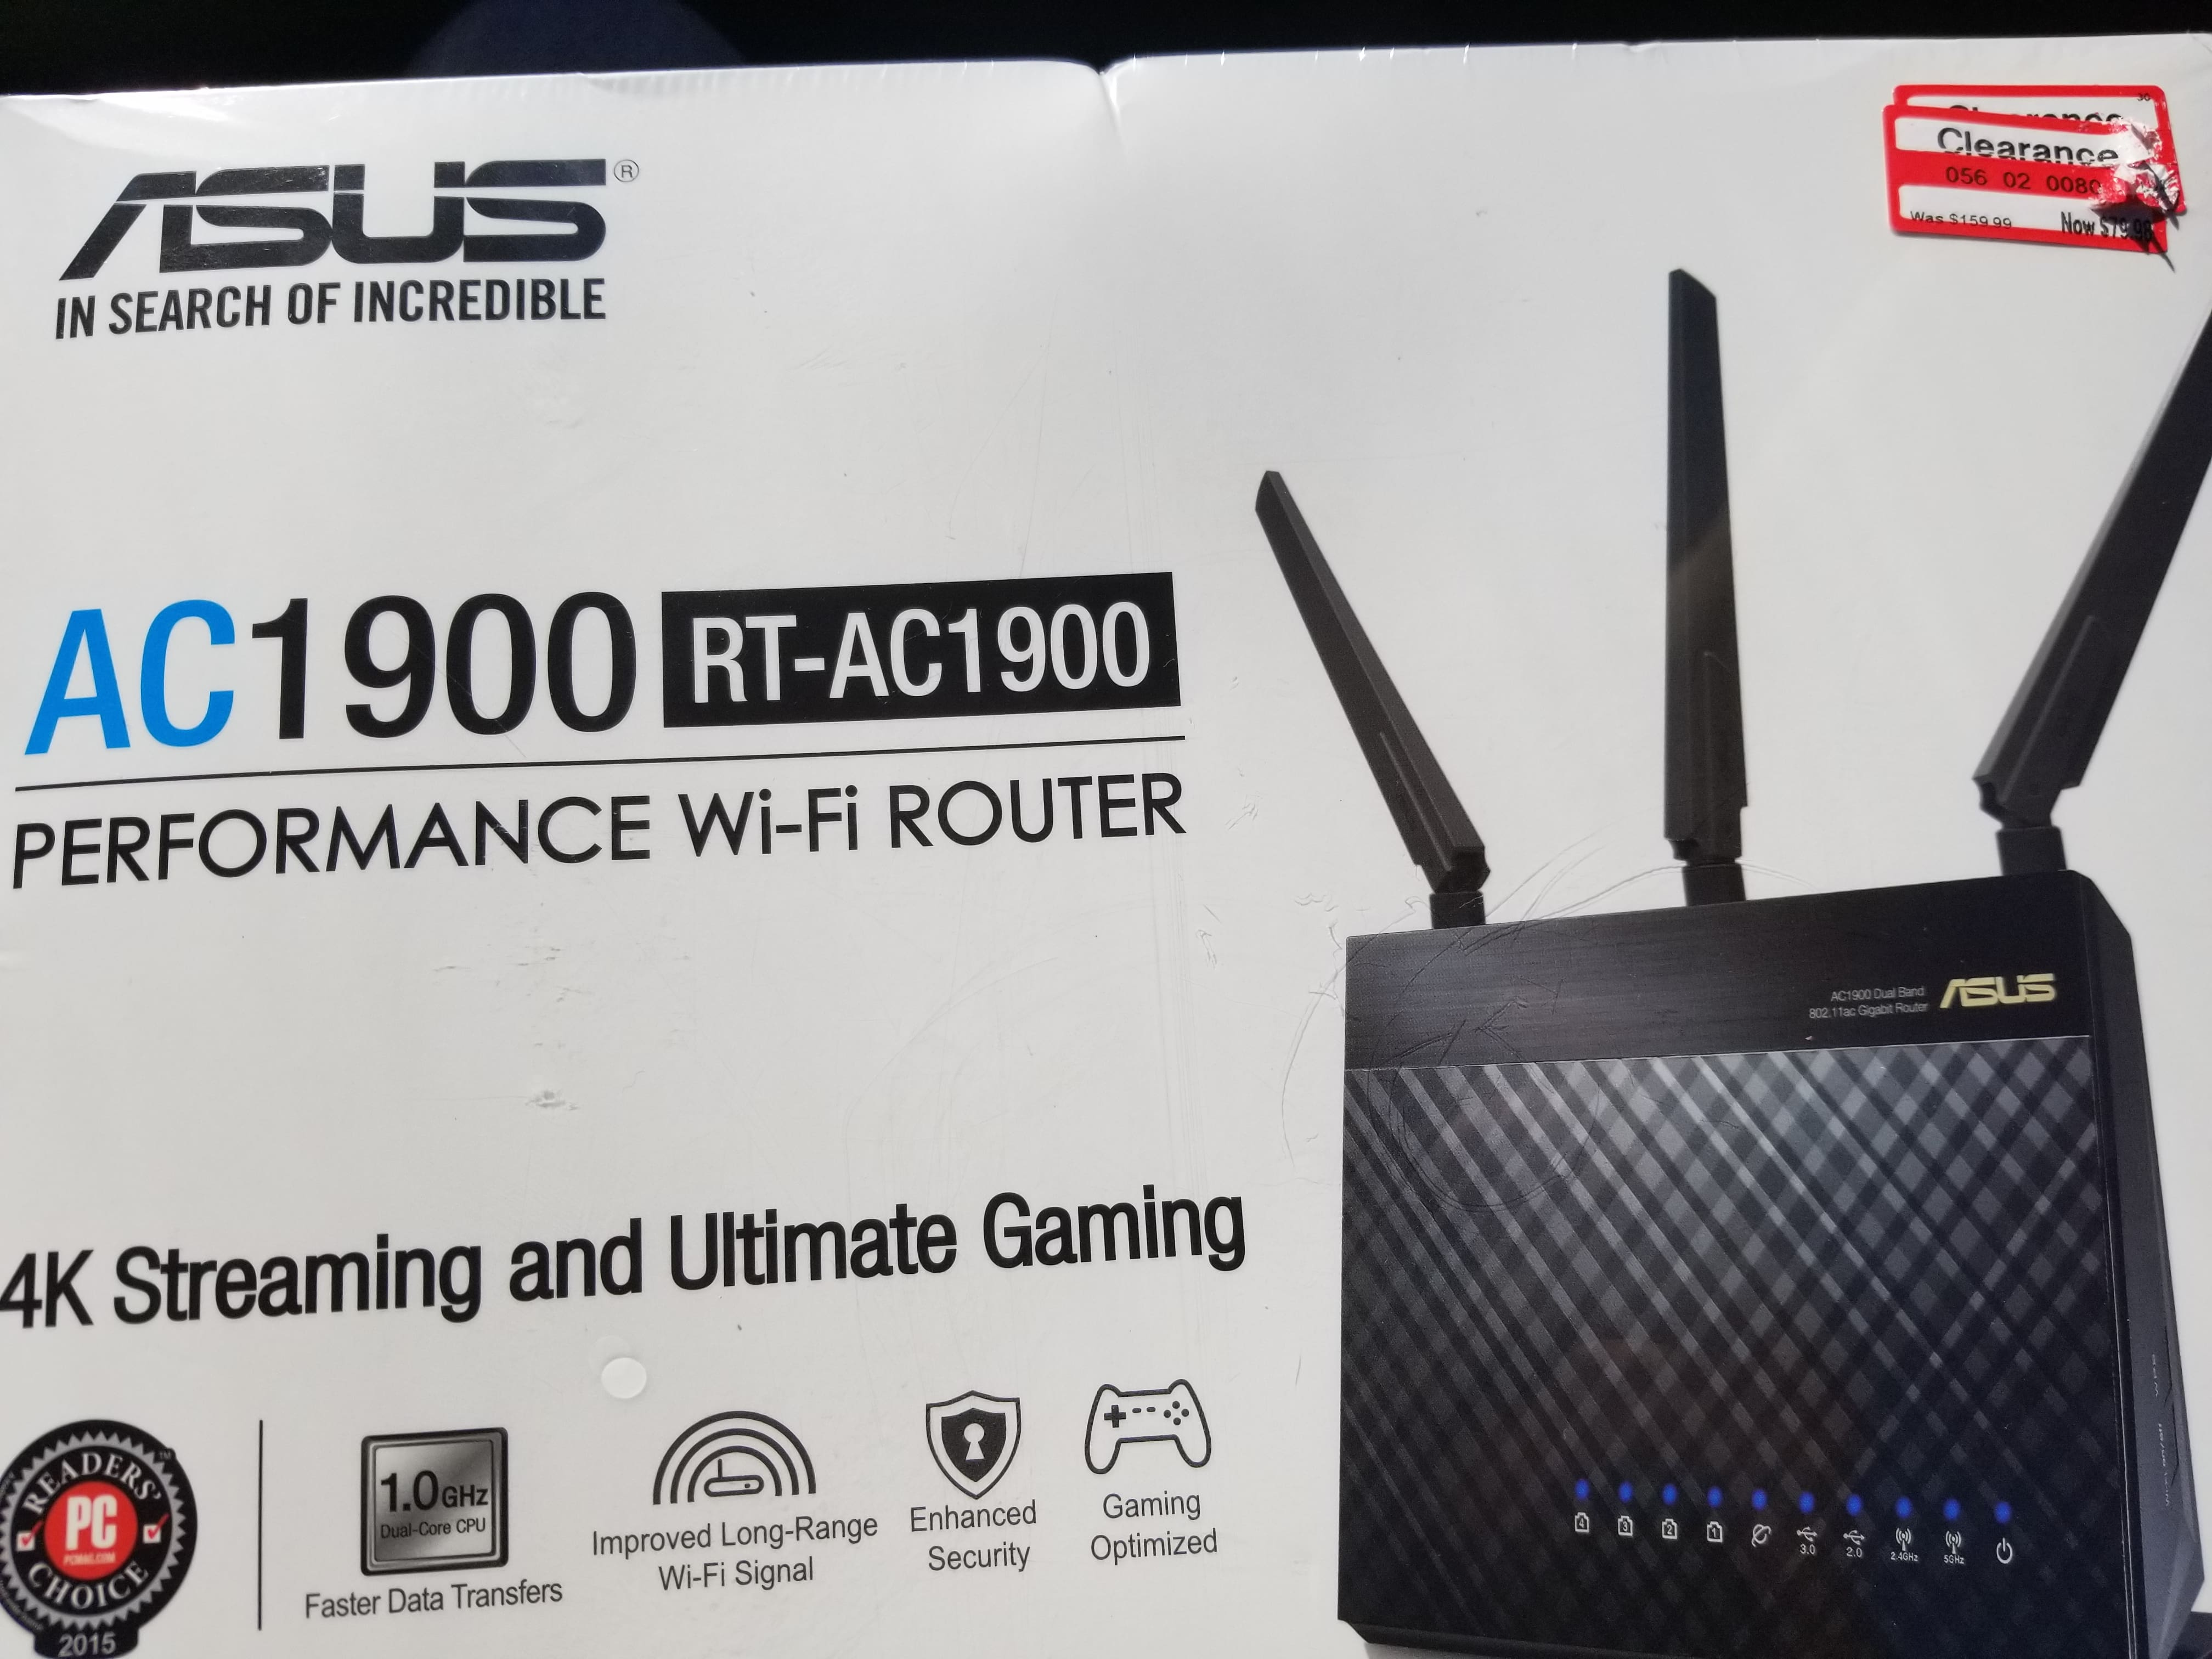 ASUS RT-AC68R AC1900 Wireless Router target ymmv $80